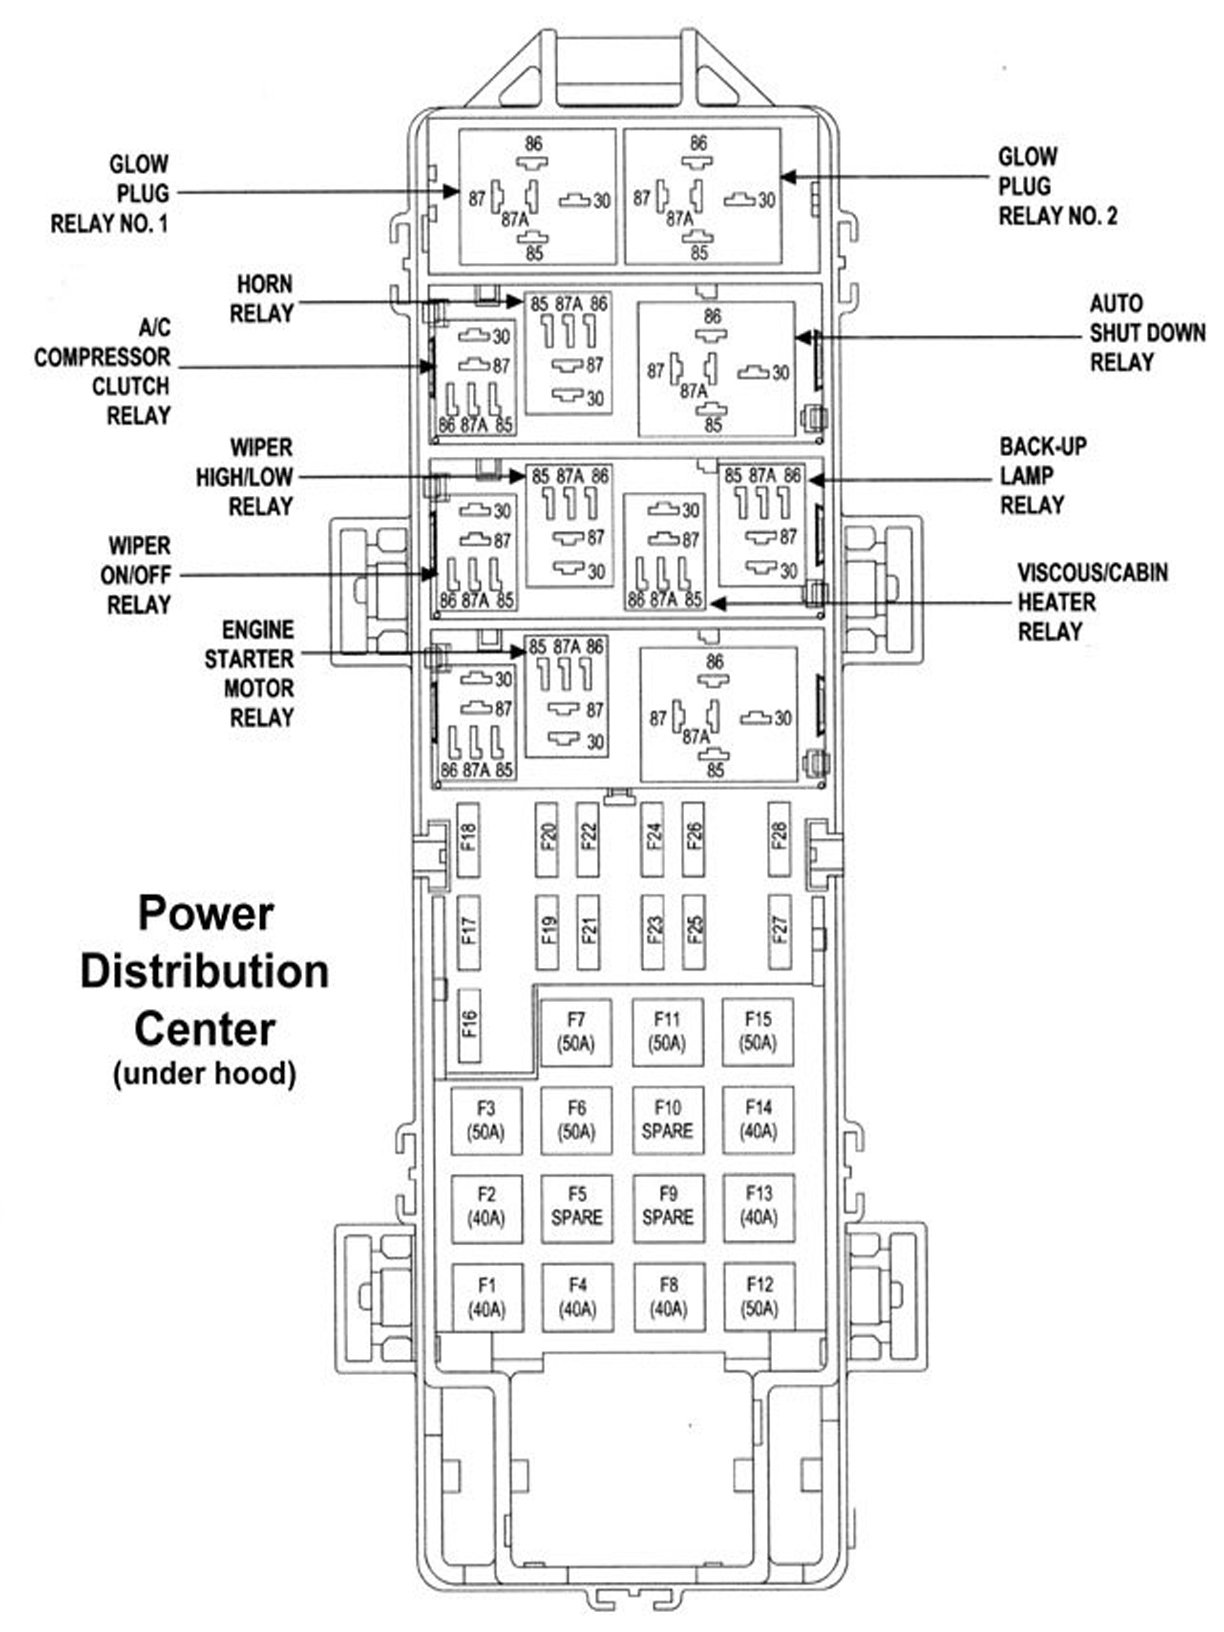 Jeep Grand Cherokee 1999 2004 Fuse Box Diagram 397760 on jaguar motorhome